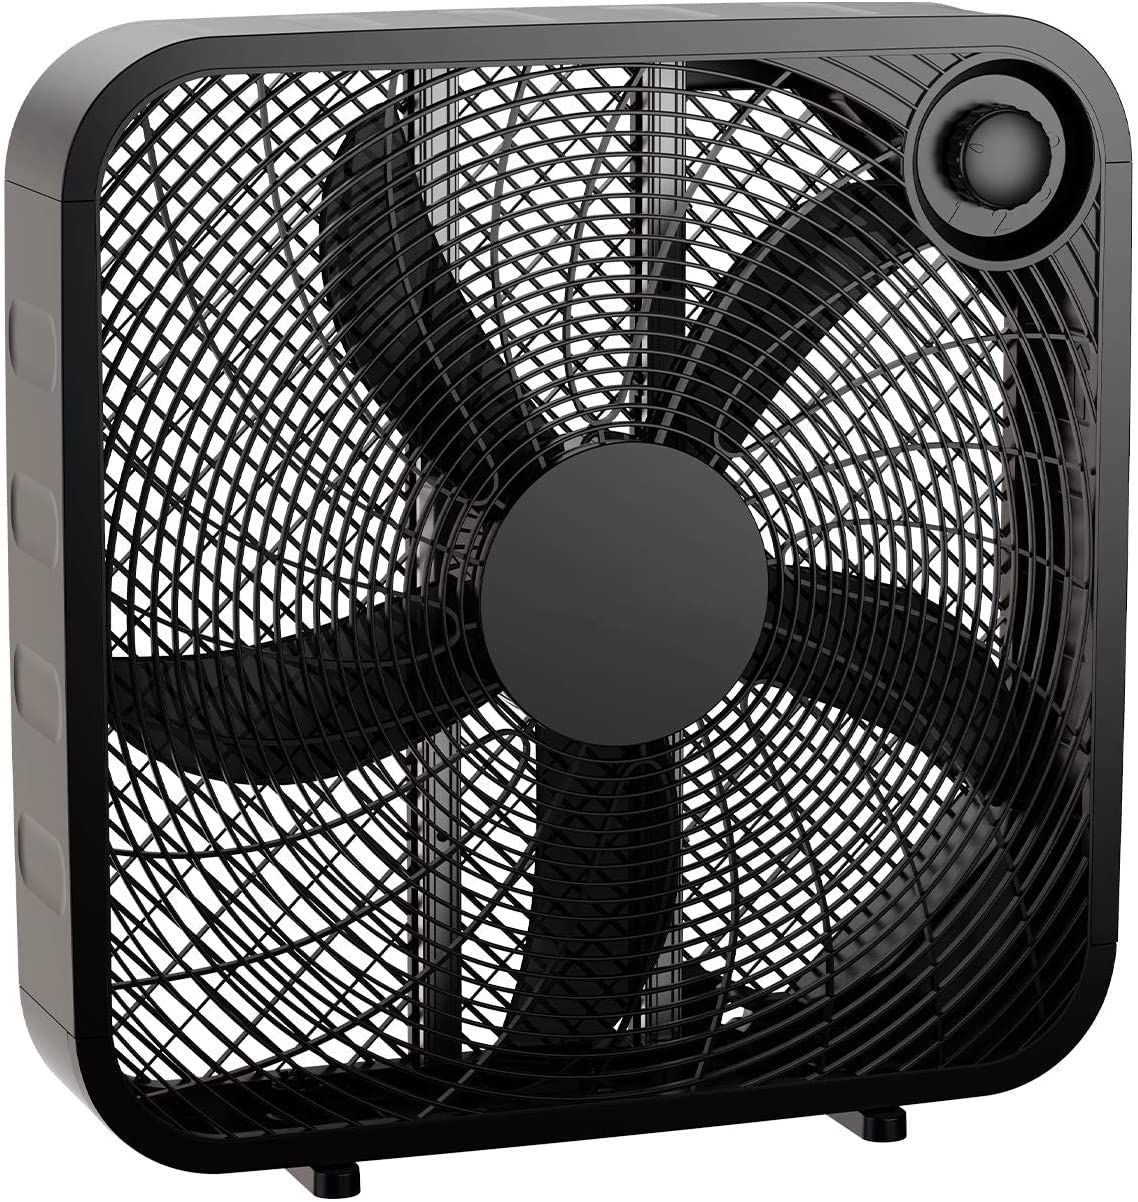 XKRSBS 3-Speed Box Fan for Full-Force Circulation with Air Conditioner, Black, 2020 New Model